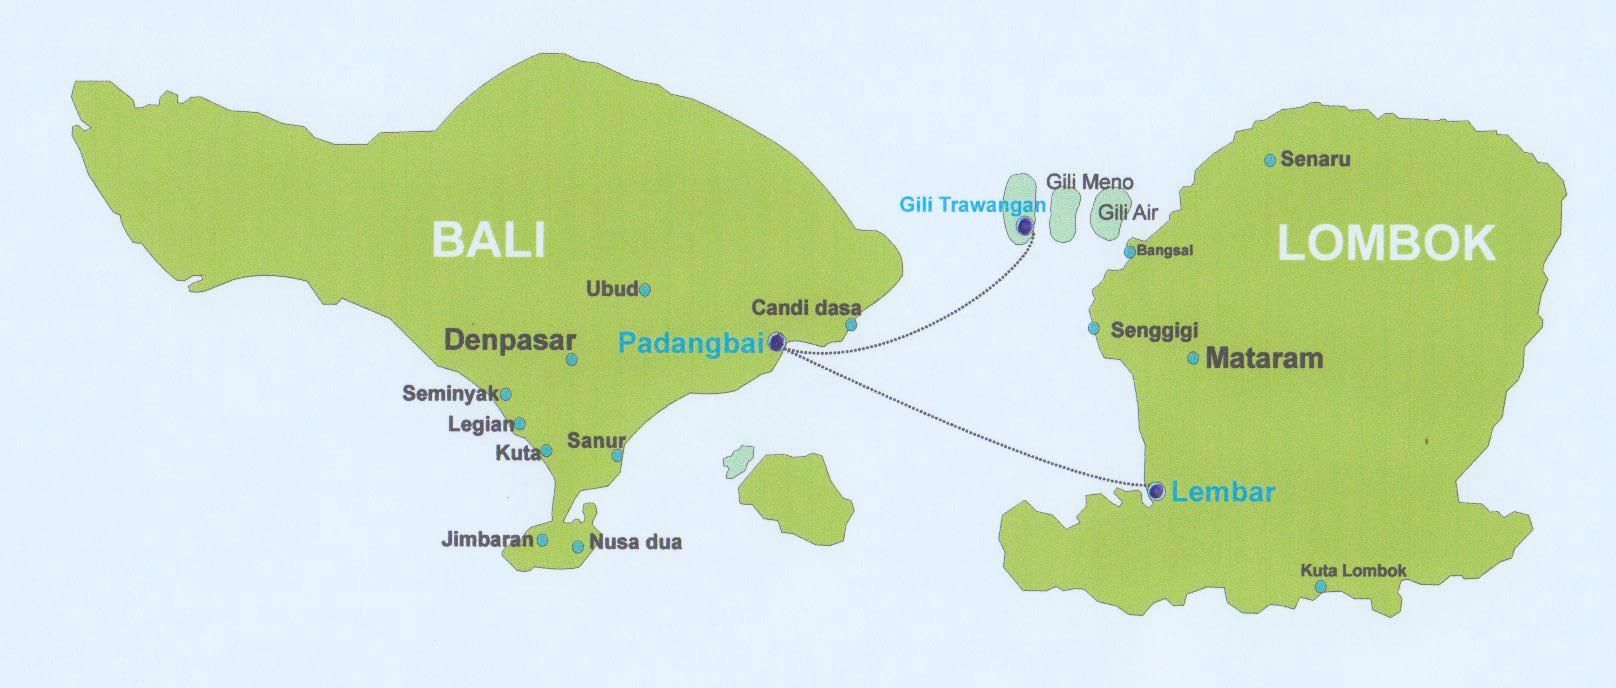 map of Bali, Lombok and the 3 Gili Islands, Gili Trawangan, Gili ...